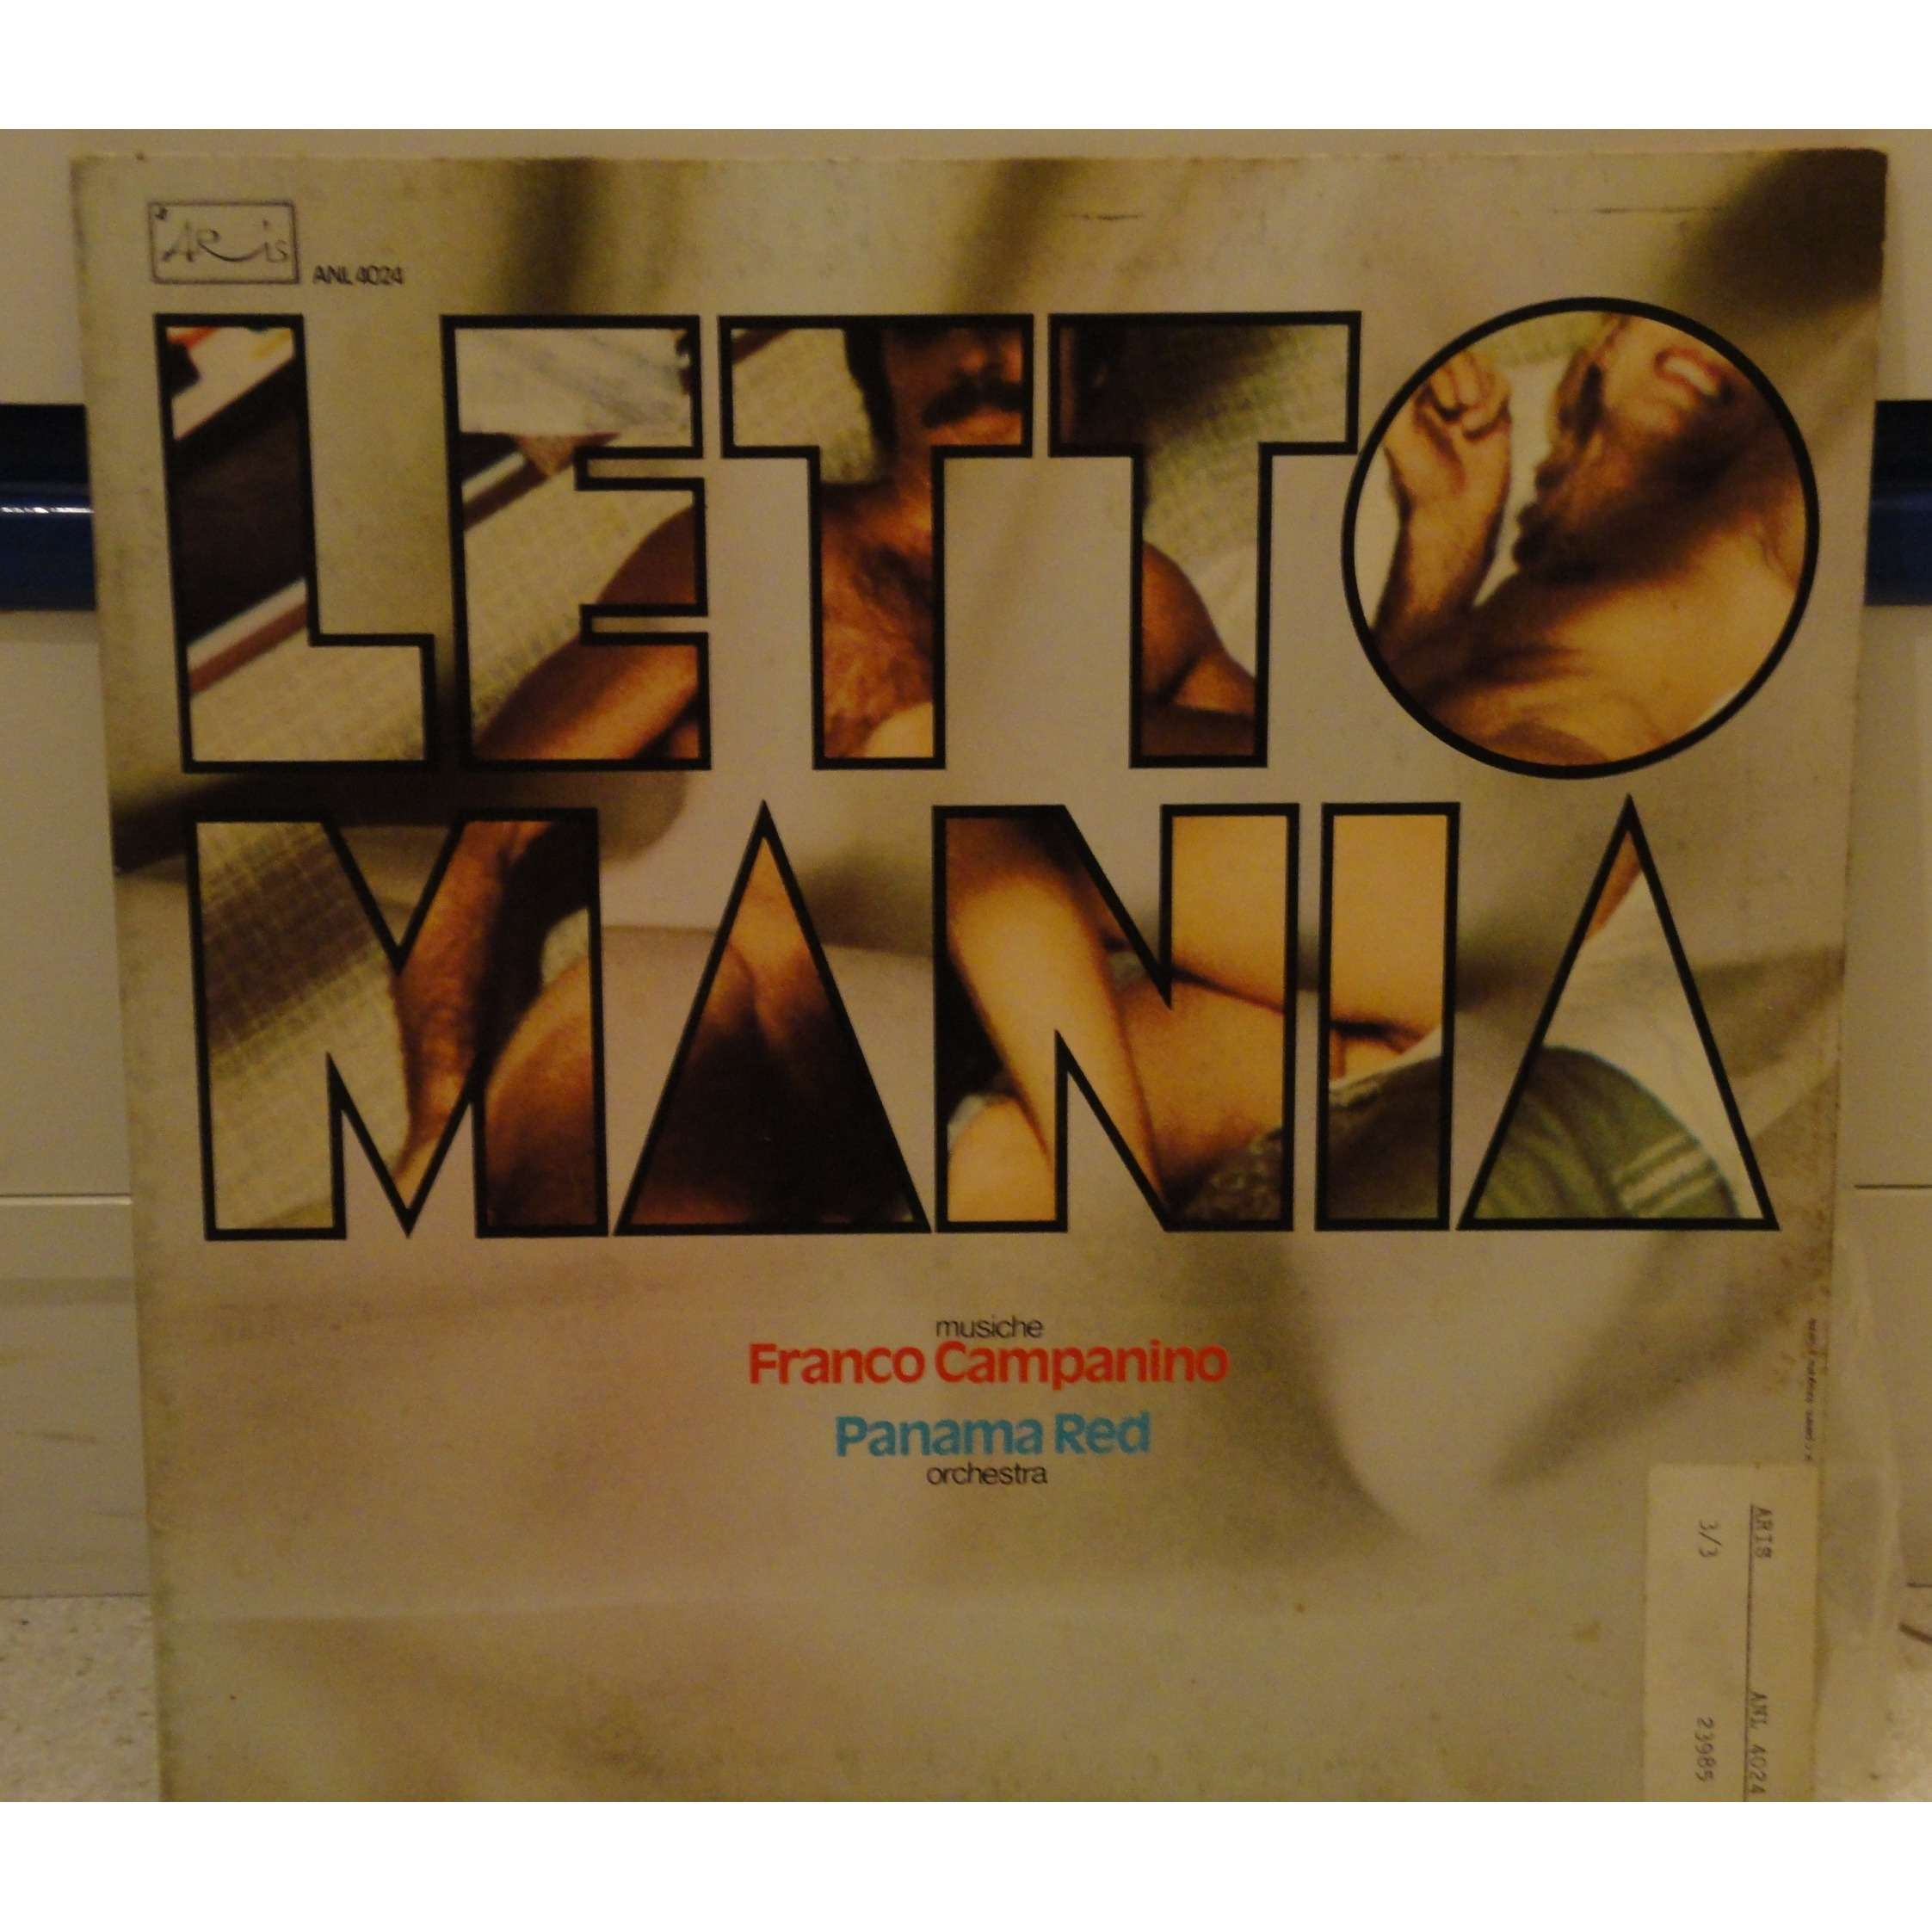 Lettomania movie